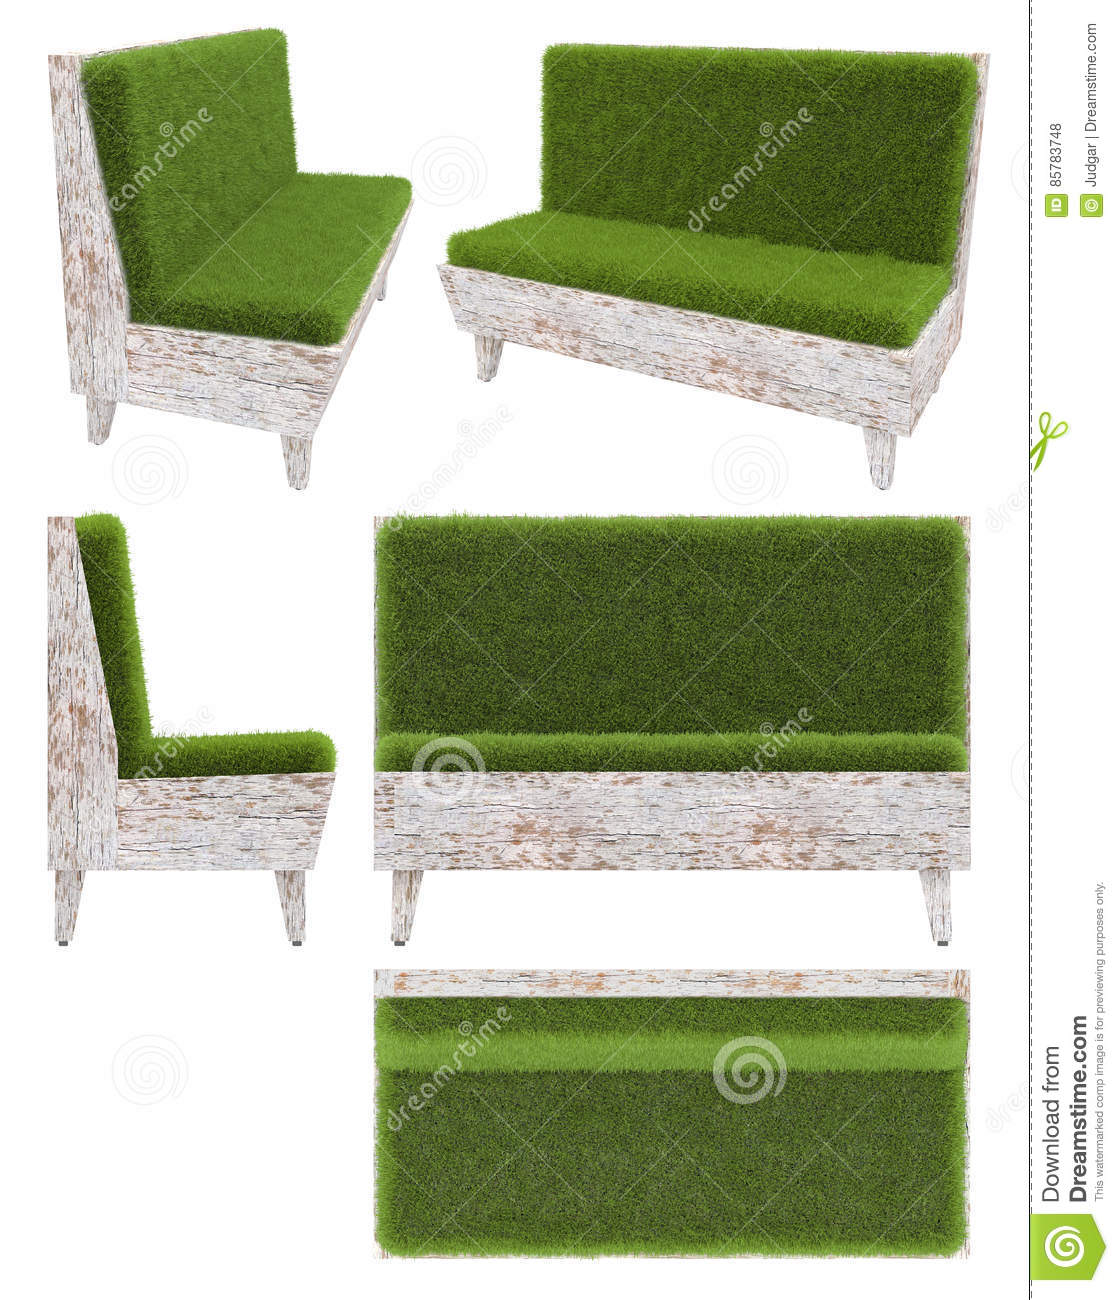 Garden Furniture Top View sofa in old wood with grass cover. garden furniture. top view